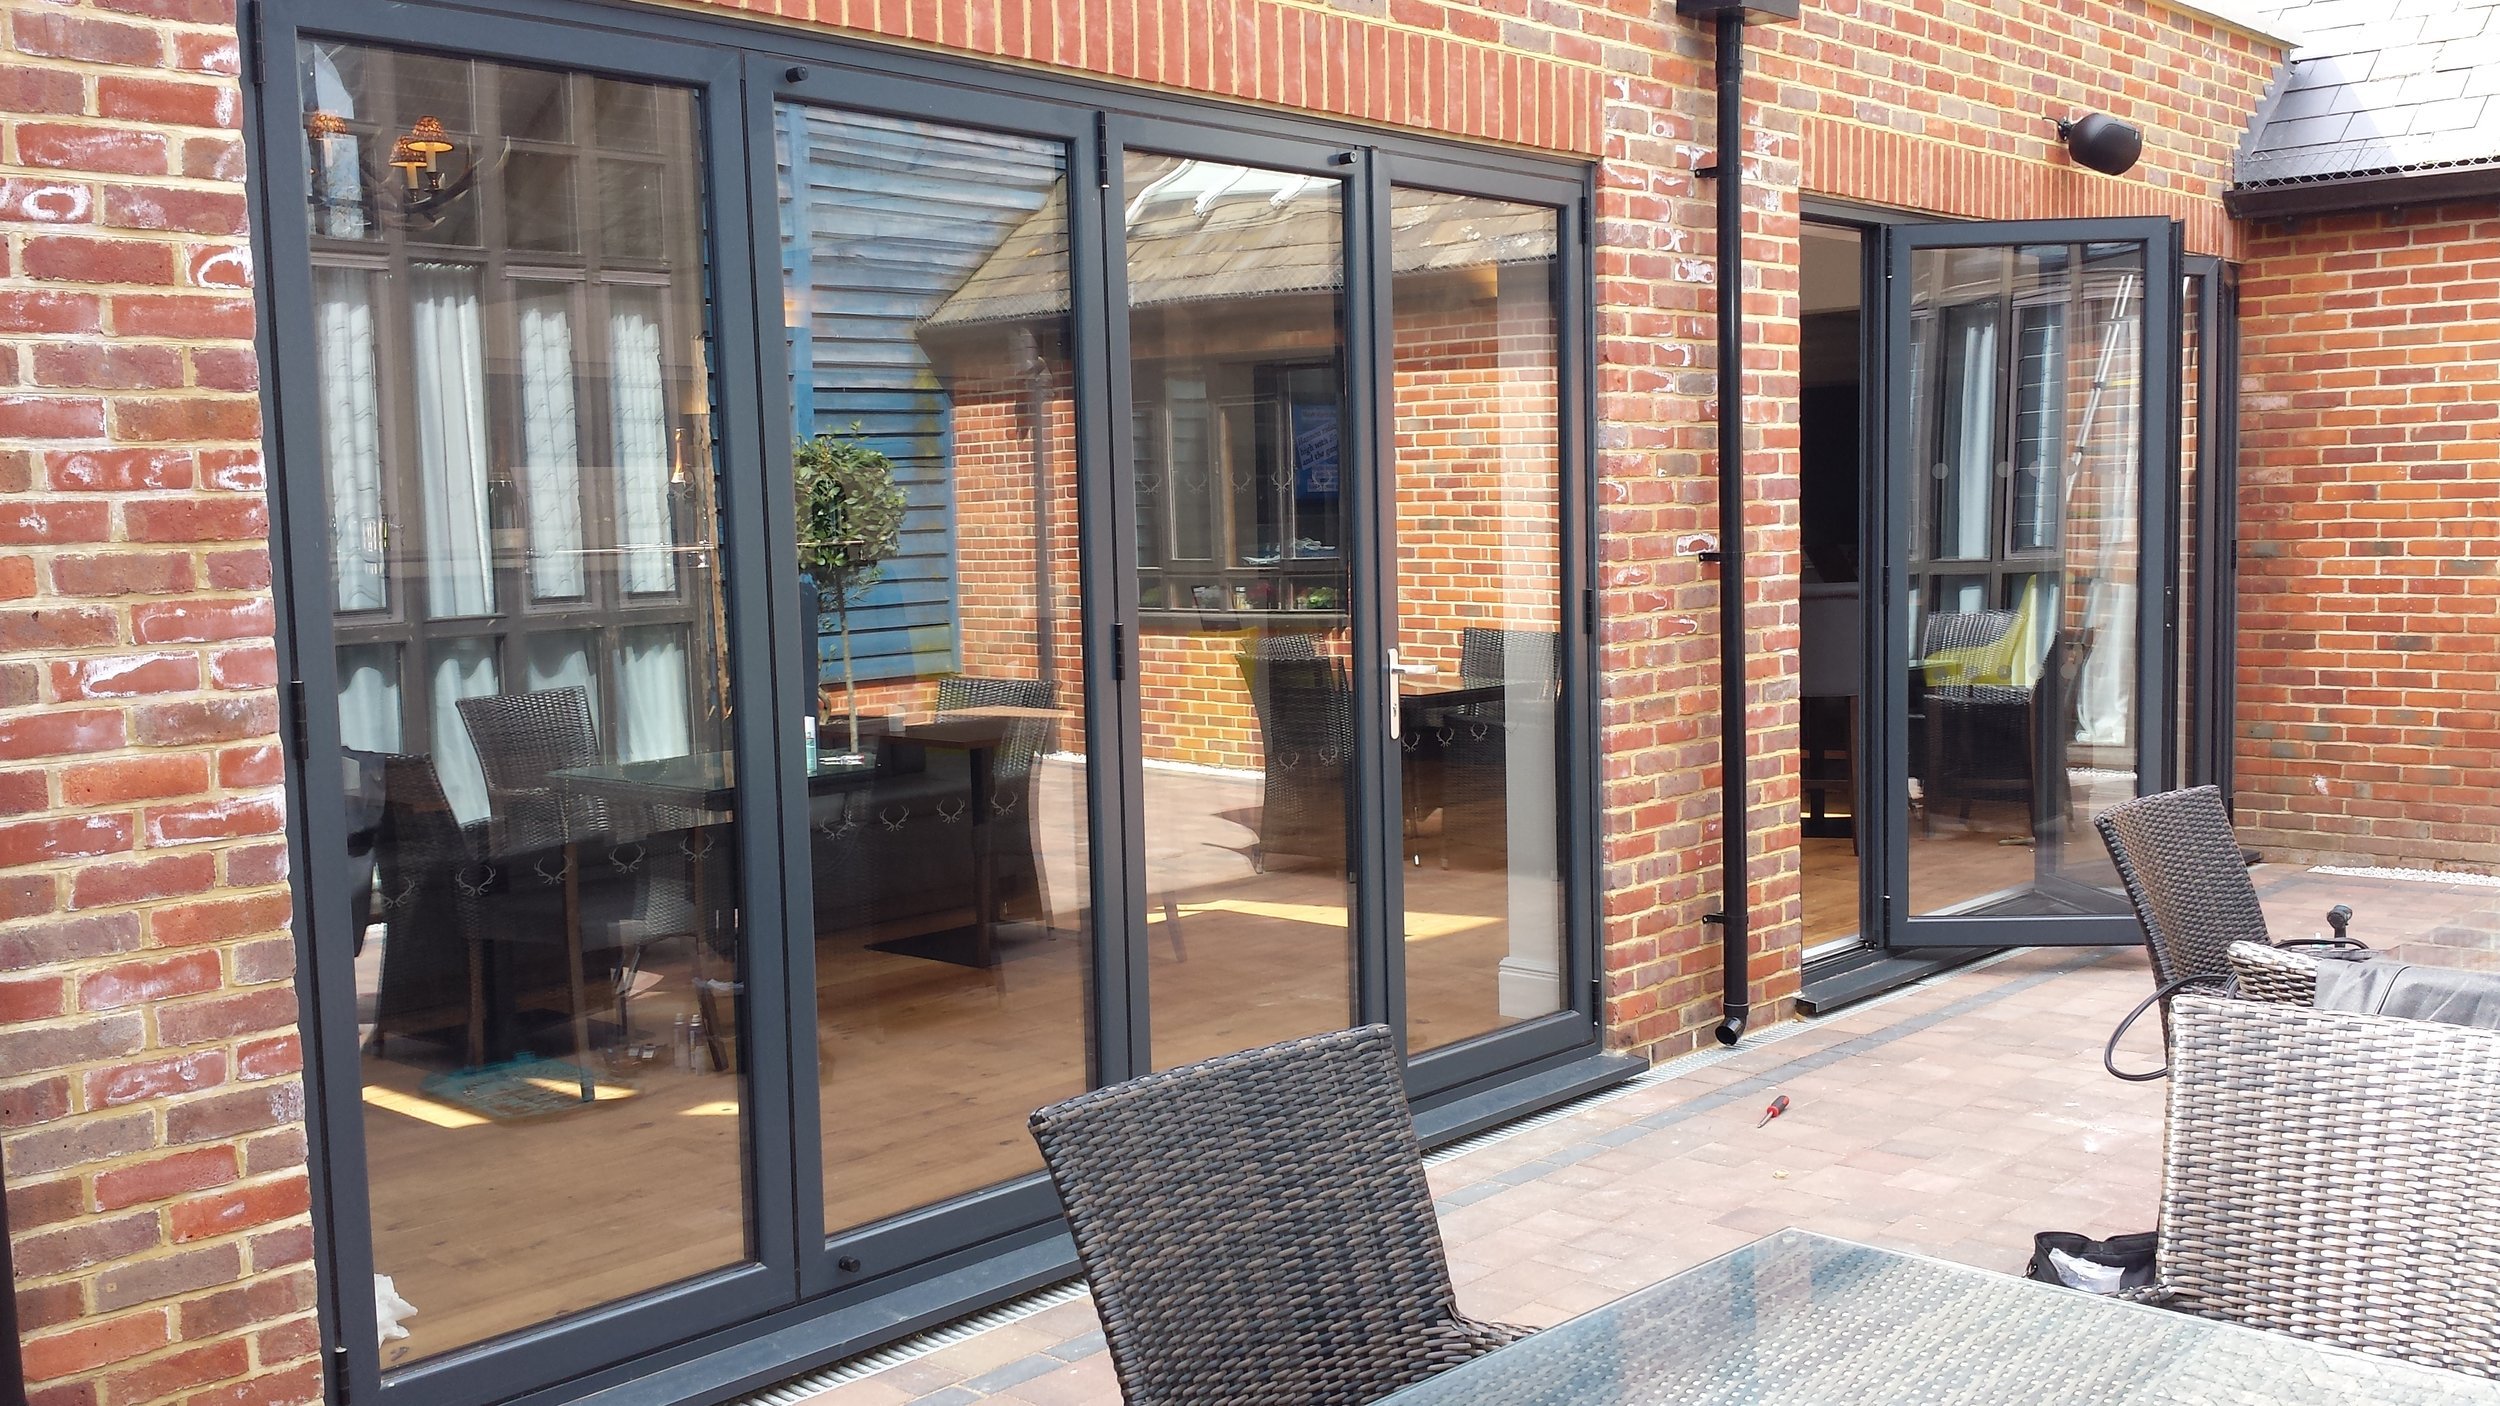 Bi-Fold Doors - At Oakwood Windows we are proud to supply and install high-specification, bespoke ALUK bi-fold doors. Our bi-fold range helps you to seamlessly blend the outside and inside space of your home, enabling true open-plan living.The combination of striking design and high functionality ensure that our doors incorporate the highest specifications of security, efficiency and finish.